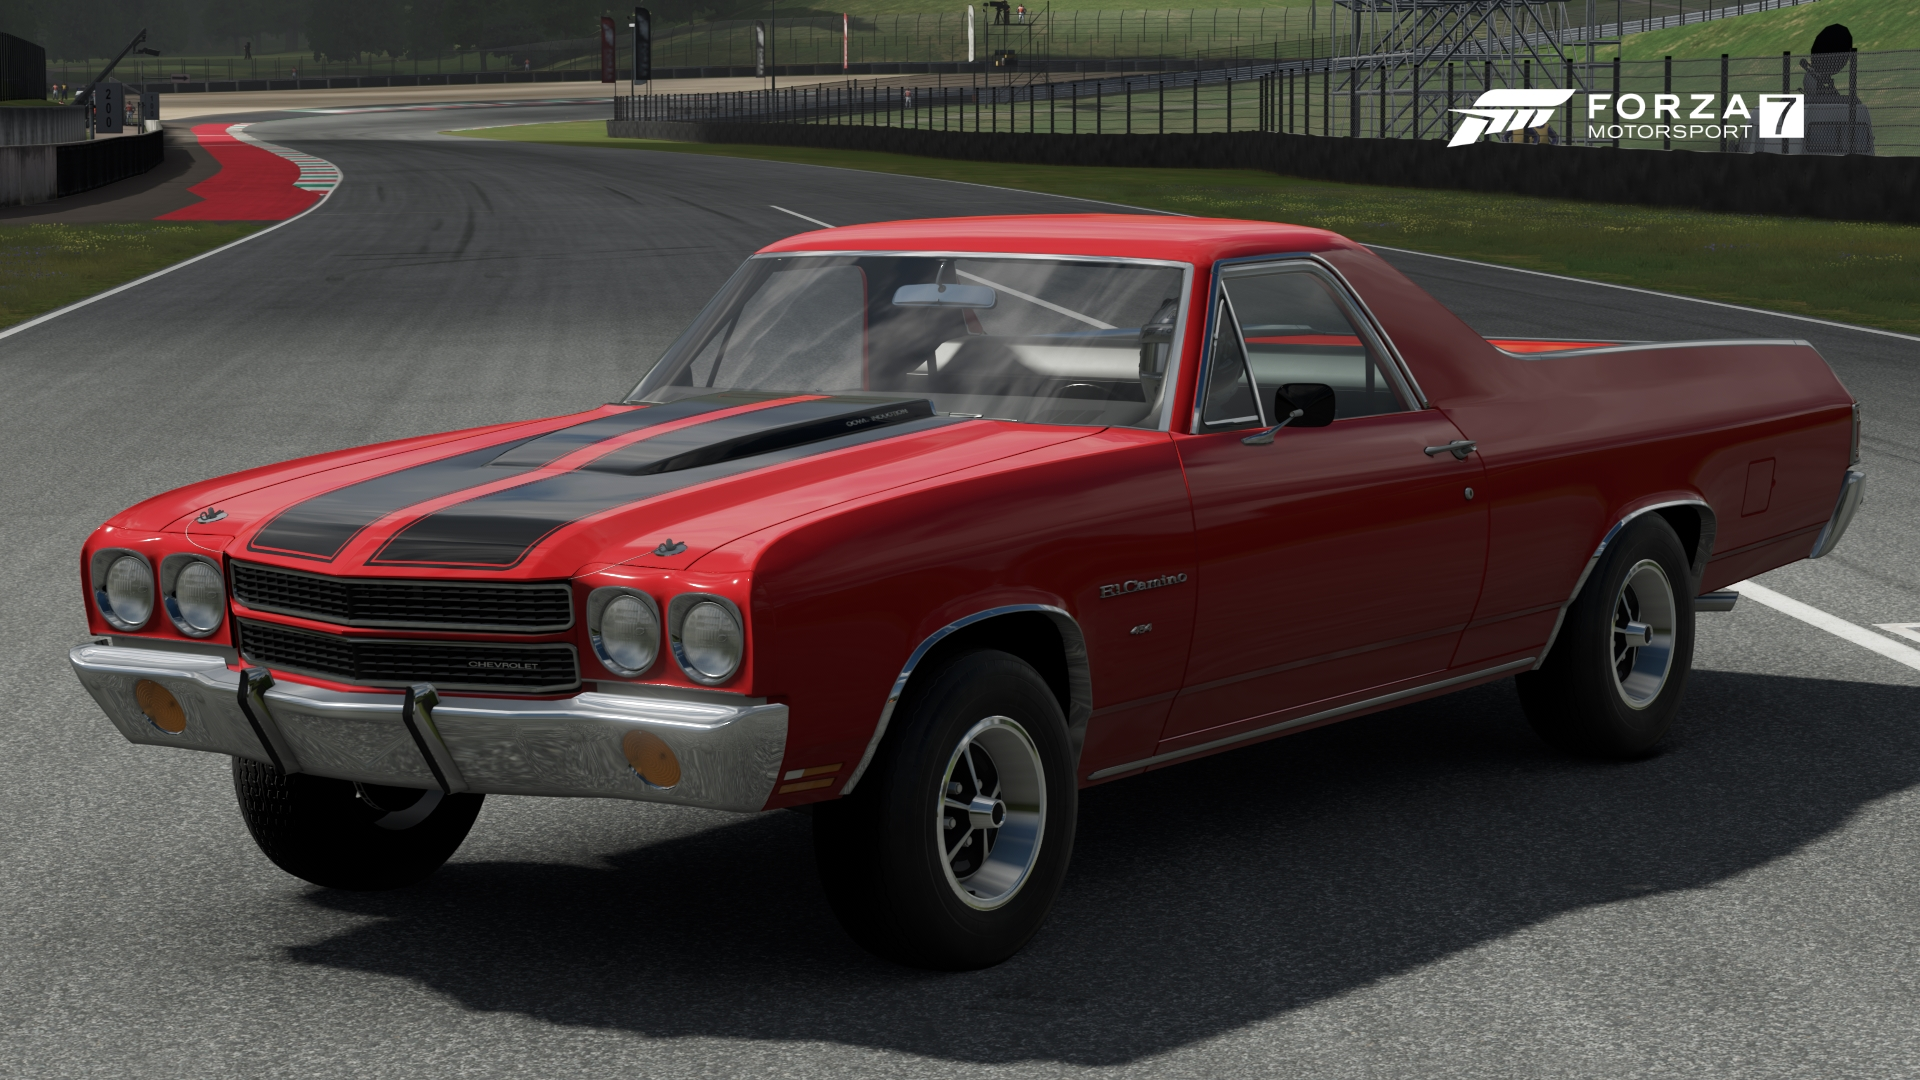 chevrolet el camino super sport 454 forza motorsport wiki fandom powered by wikia. Black Bedroom Furniture Sets. Home Design Ideas